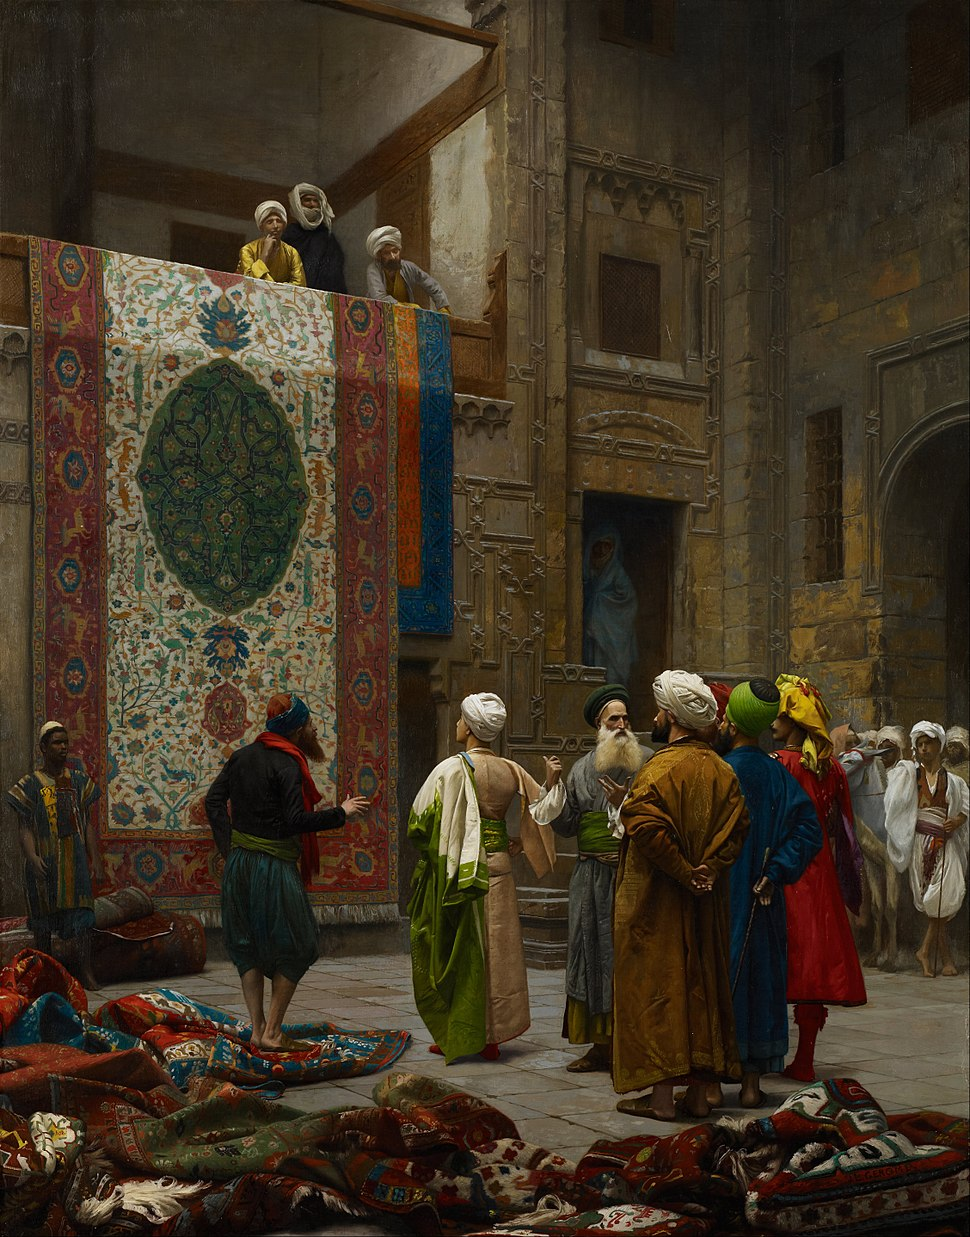 Jean-Léon Gérôme - The Carpet Merchant - Google Art Project